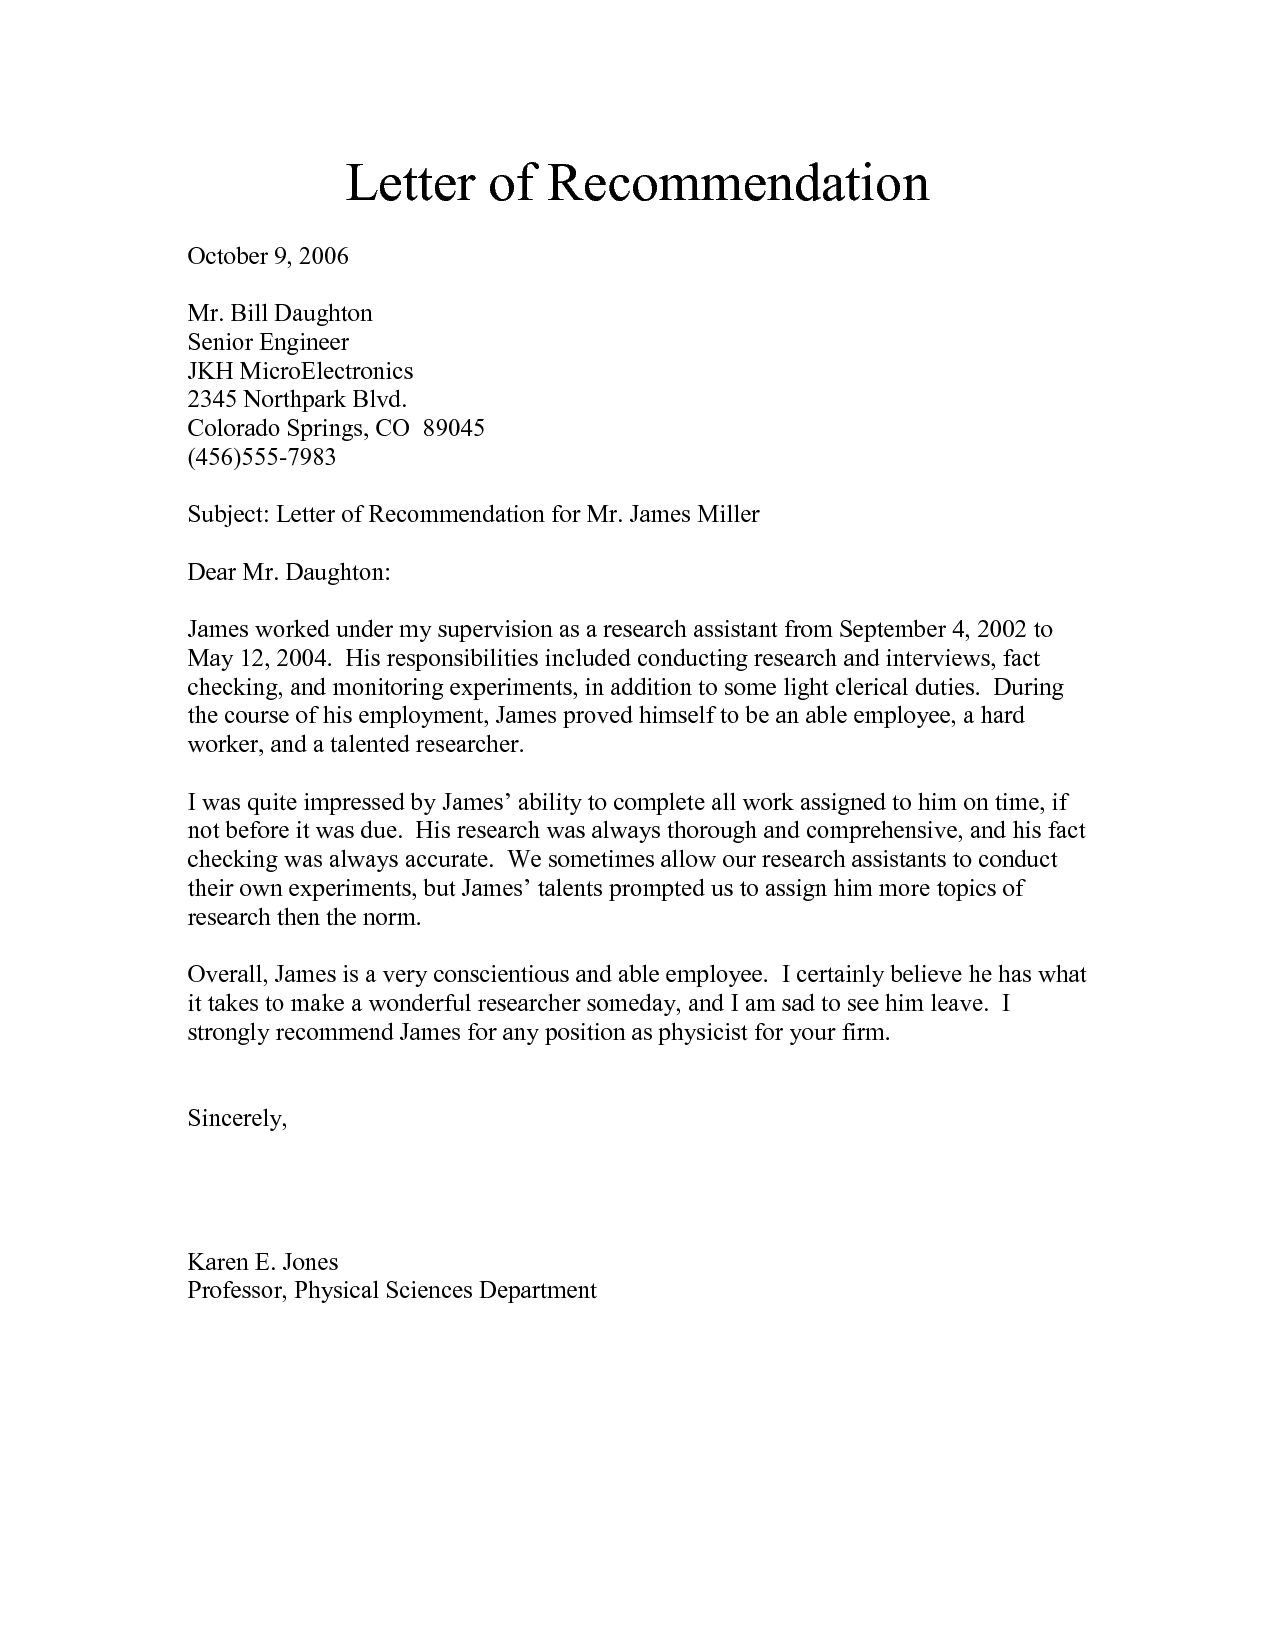 Army Letter Of Recommendation ExampleLetter Of Recommendation – Letter of Recommendation for Job